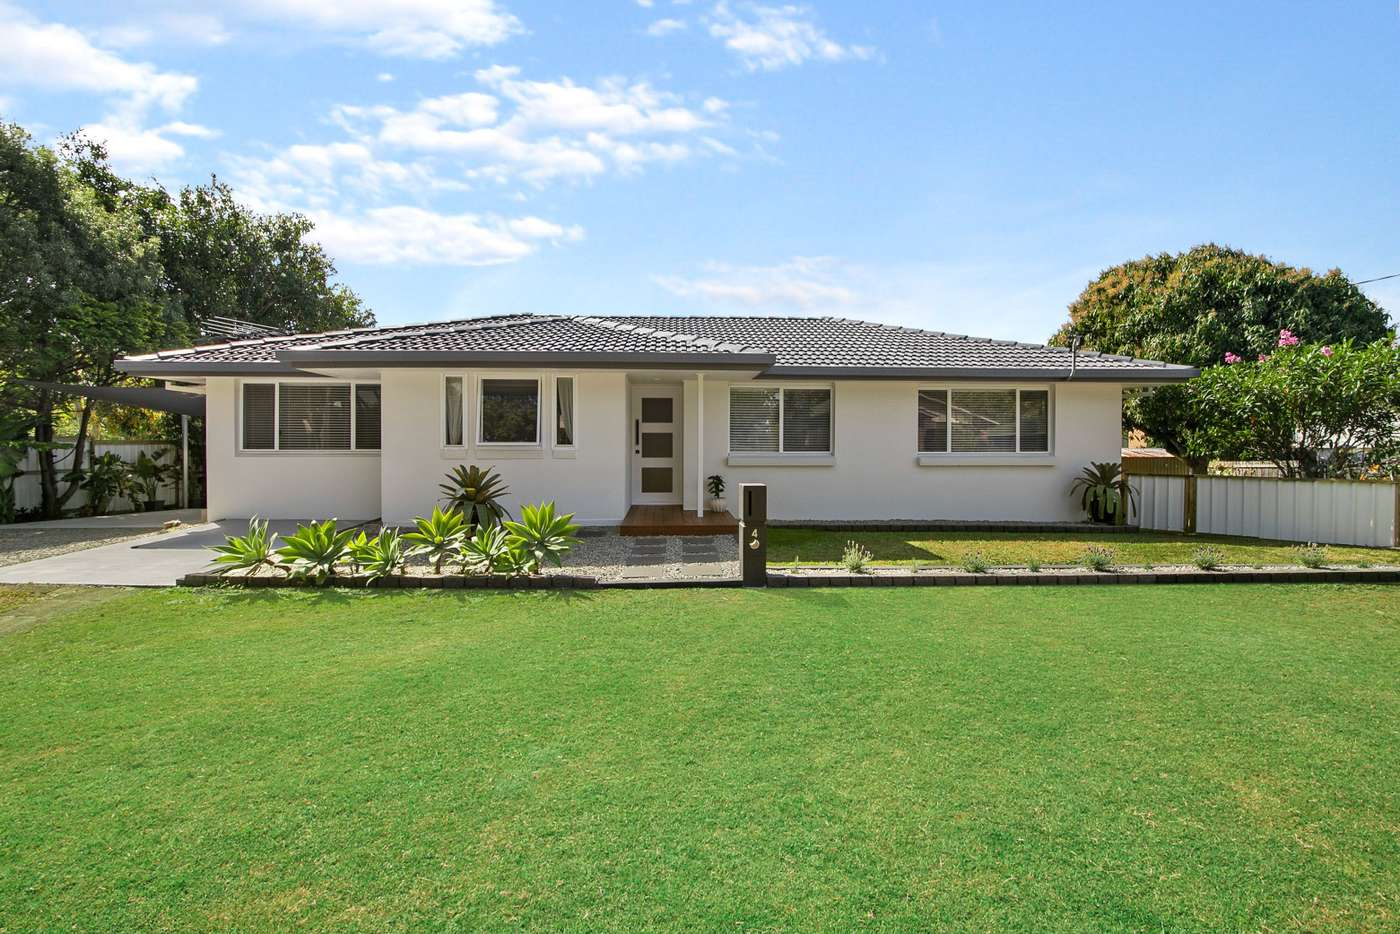 Main view of Homely house listing, 4 Fenchurch Street, Birkdale QLD 4159